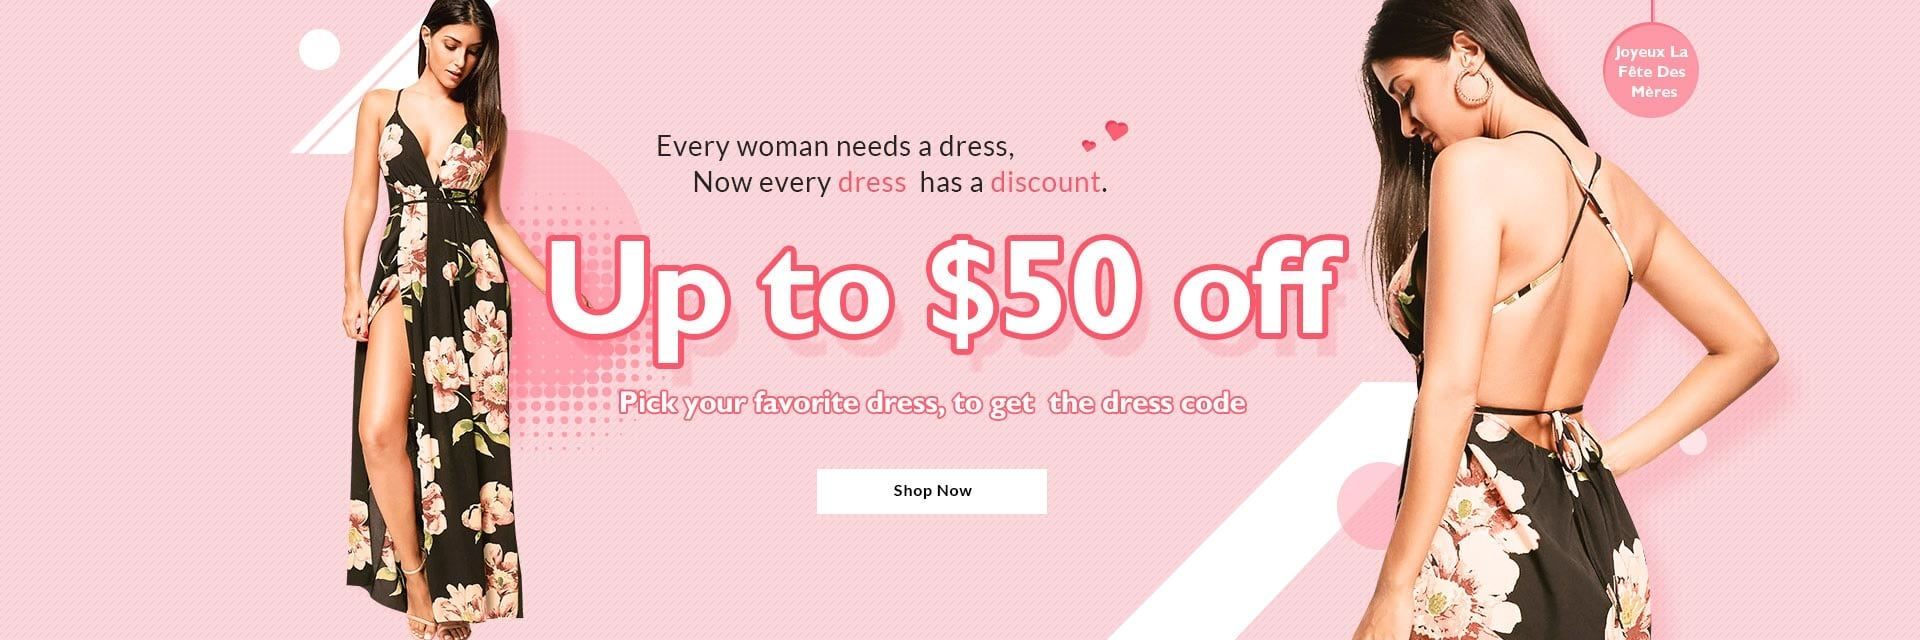 Dress to Express Online Style Clothing, Shoes & Jewelry